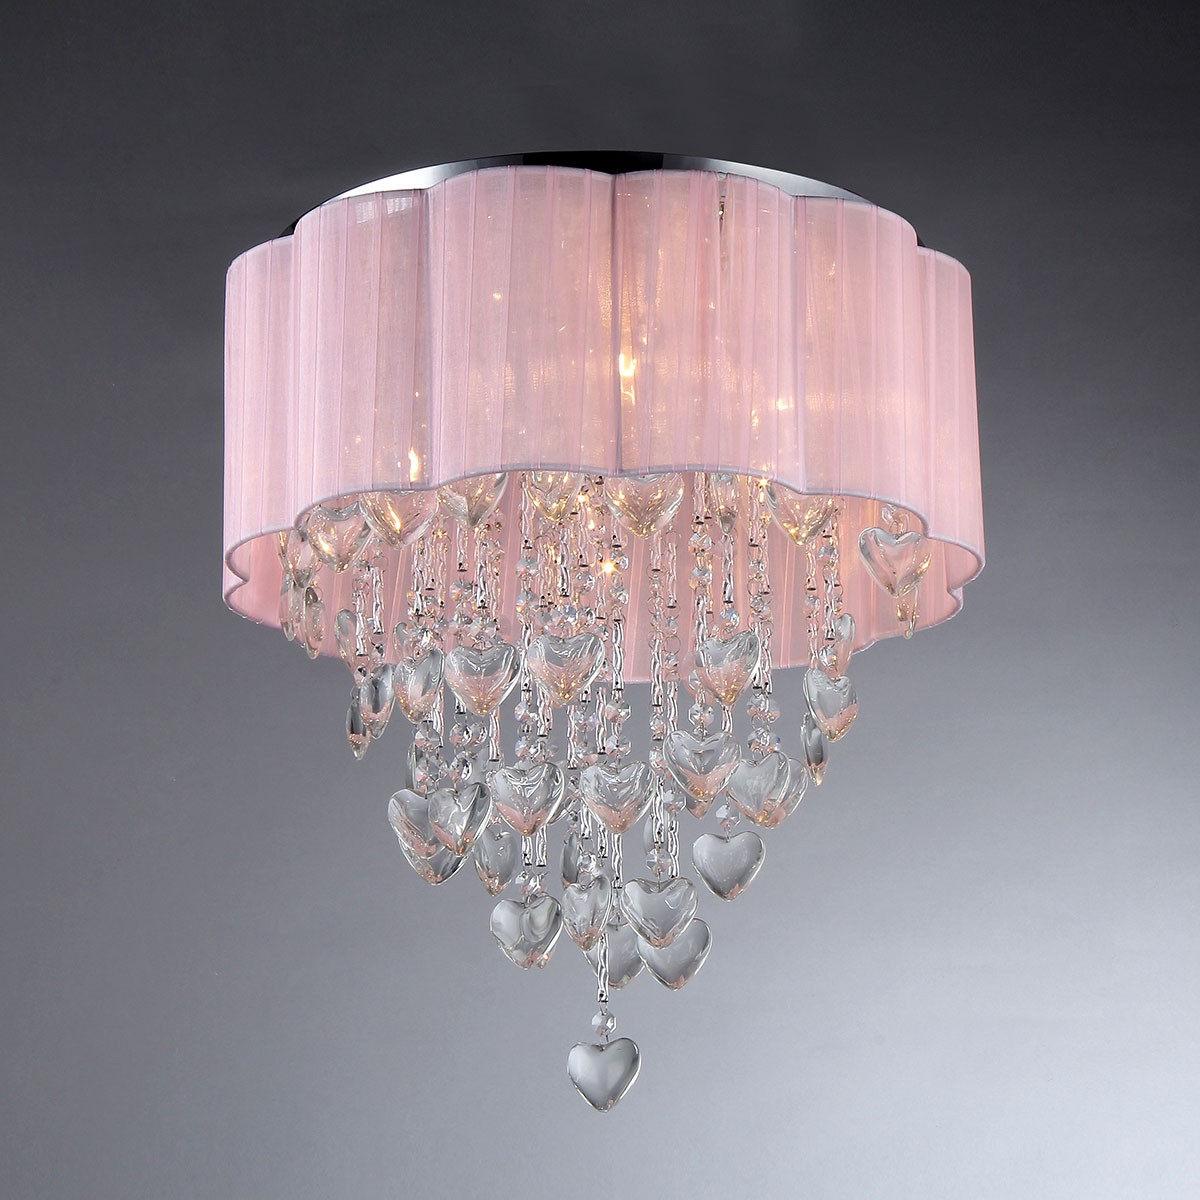 6-Light Pink Round Crystal Ceiling Light (DK-SS007)